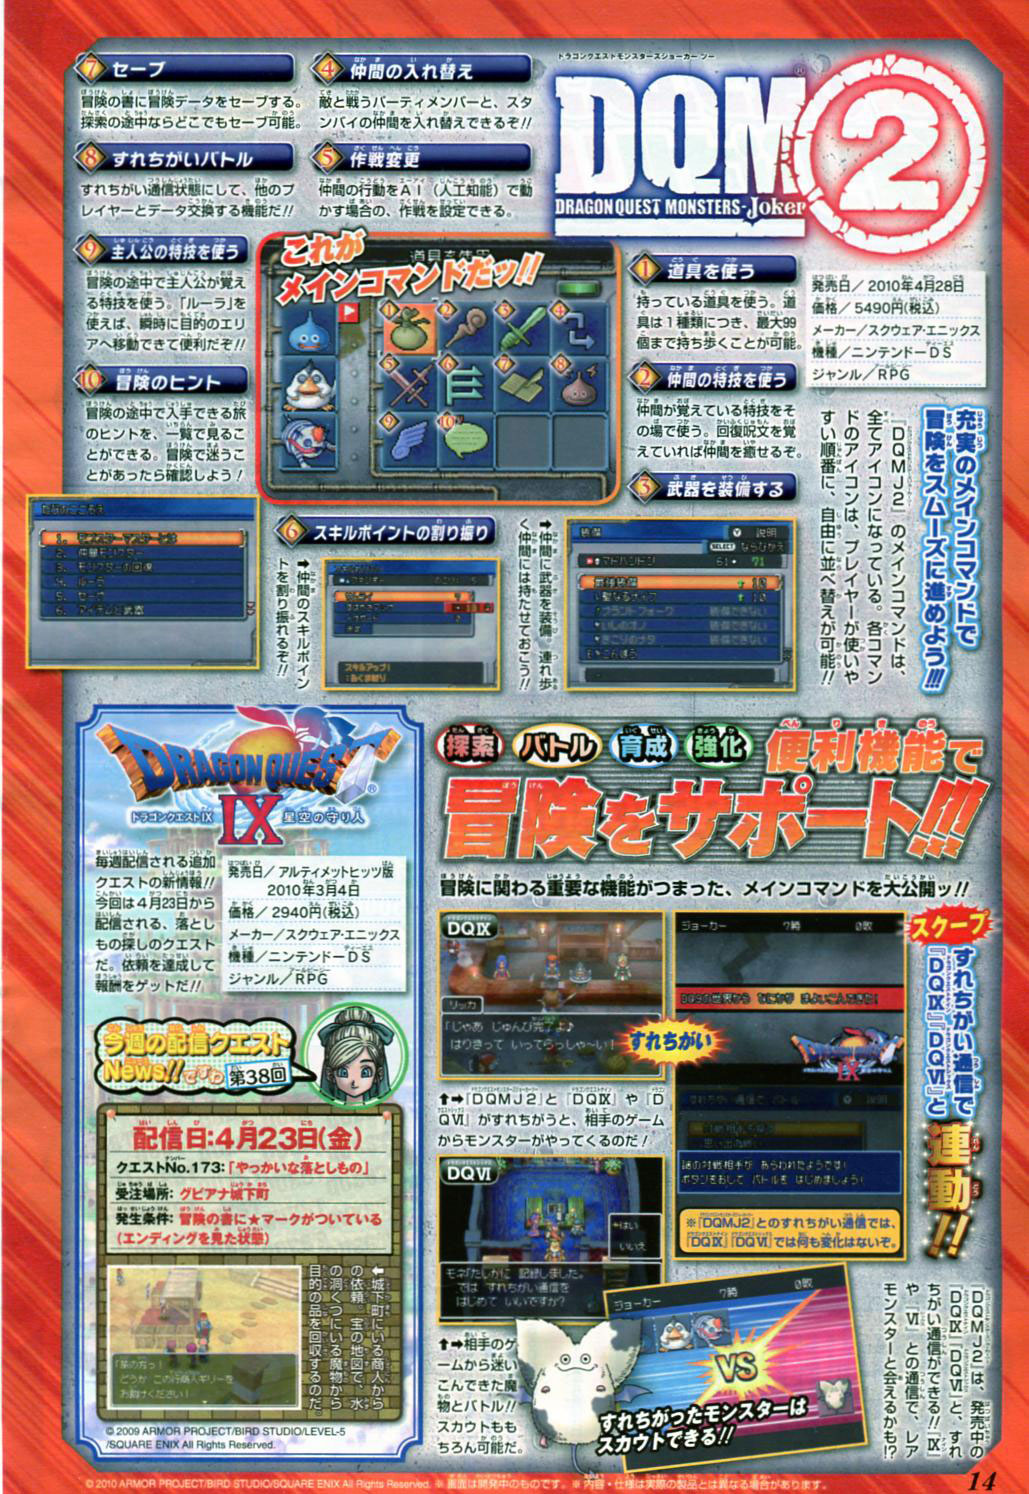 Dragon quest monsters joker 2 images amp pictures becuo